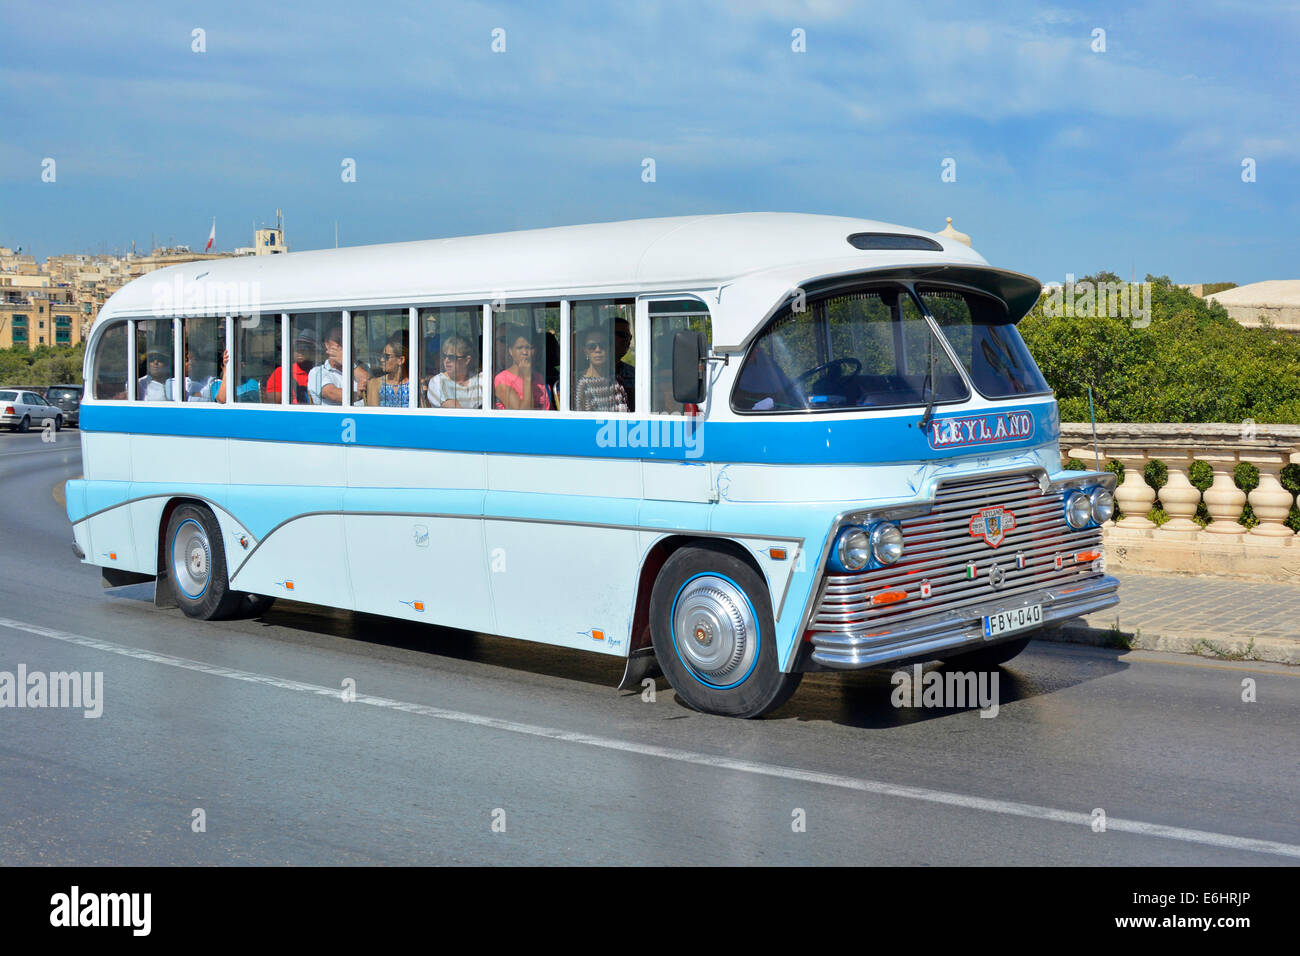 Tourists in an old Maltese Leyland bus on a sightseeing tour of Valletta Malta Europe - Stock Image